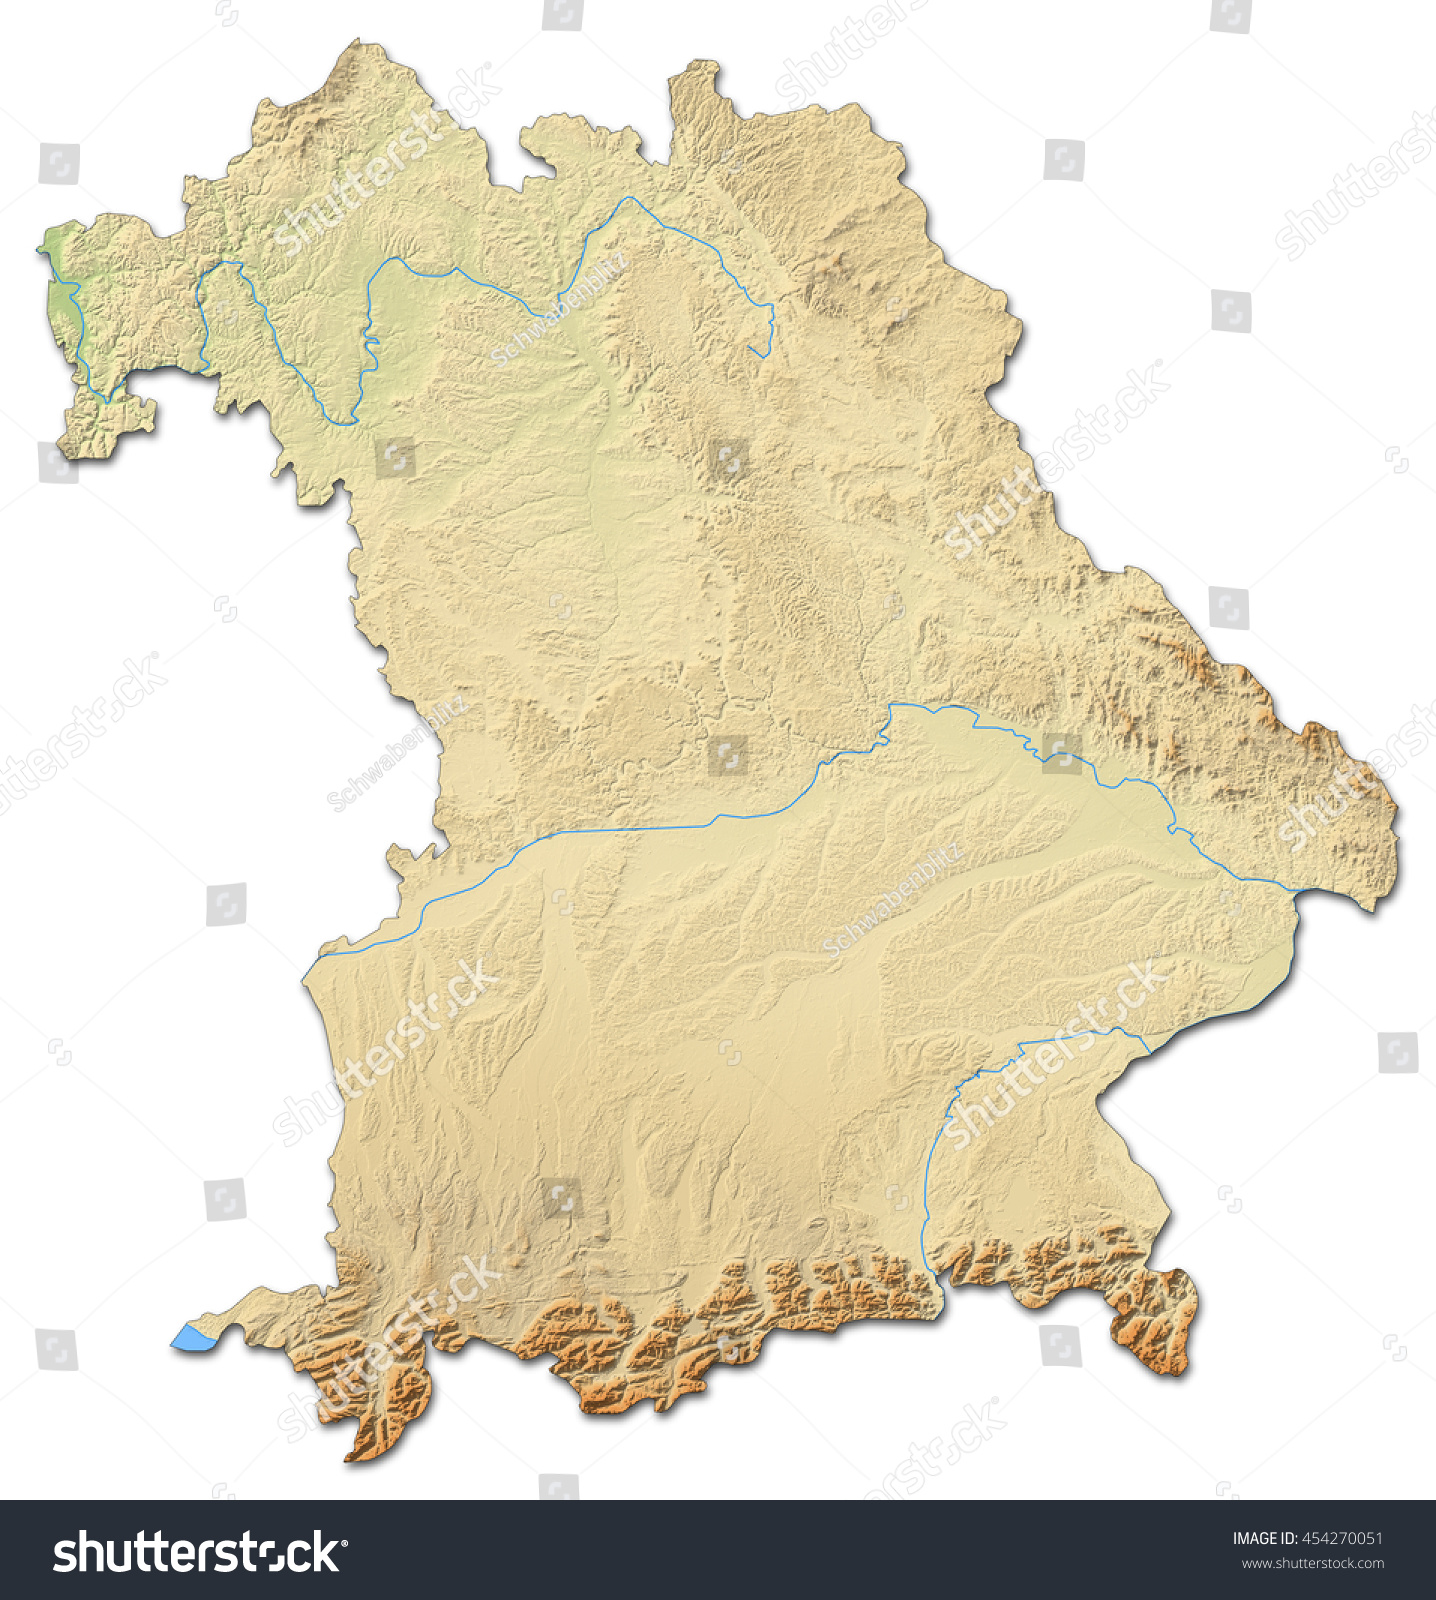 Relief map bavaria germany 3drendering stock illustration relief map bavaria germany 3d rendering sciox Image collections